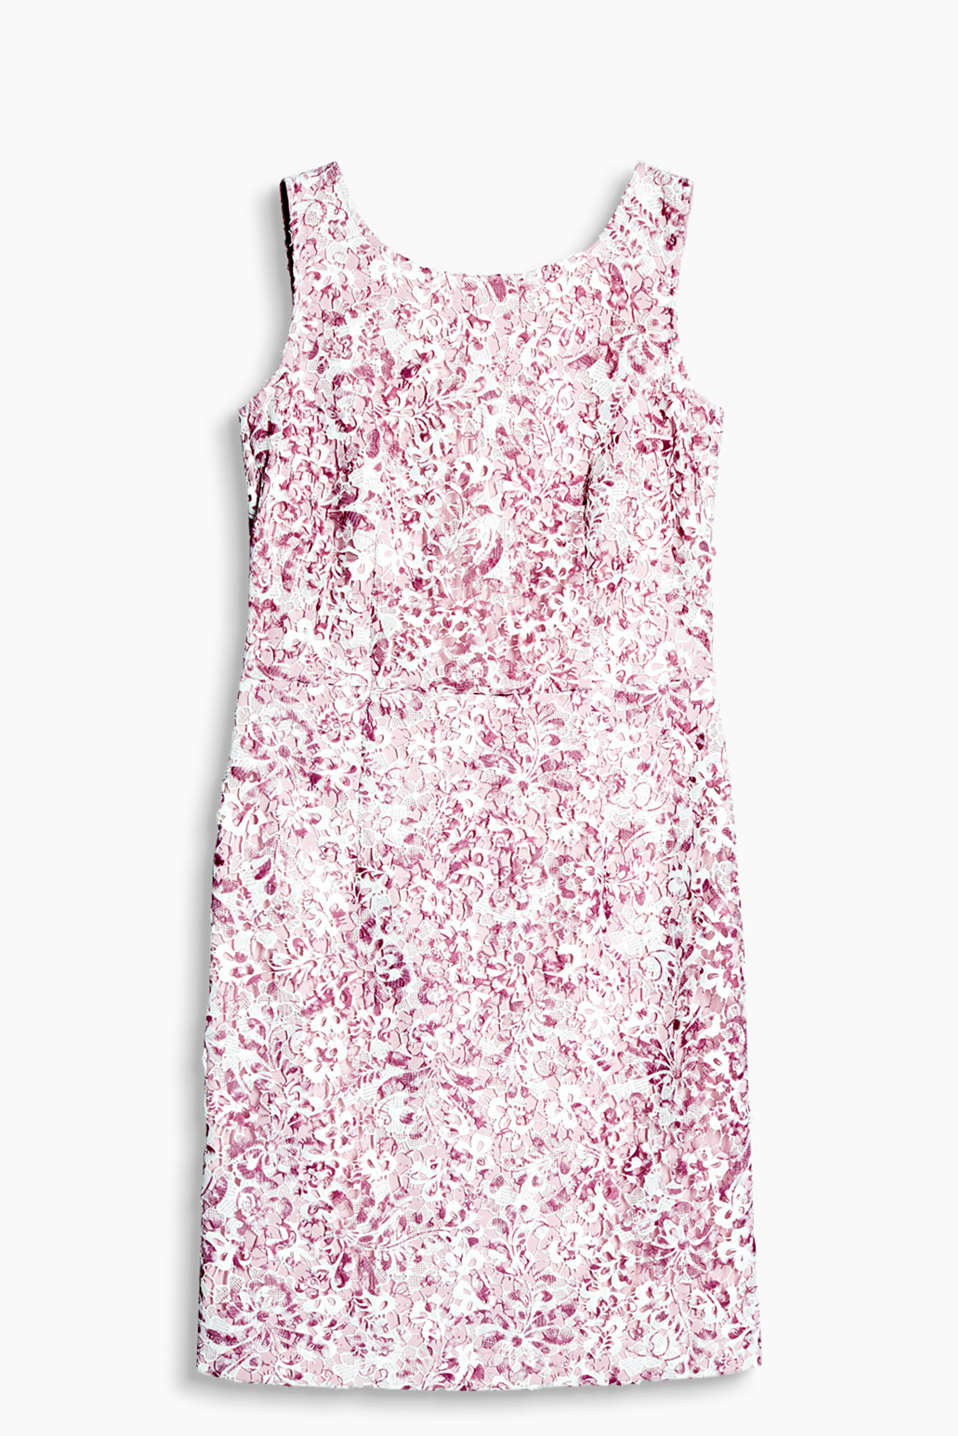 Floral dress with tone-in-tone, integrated lining, in a formal look